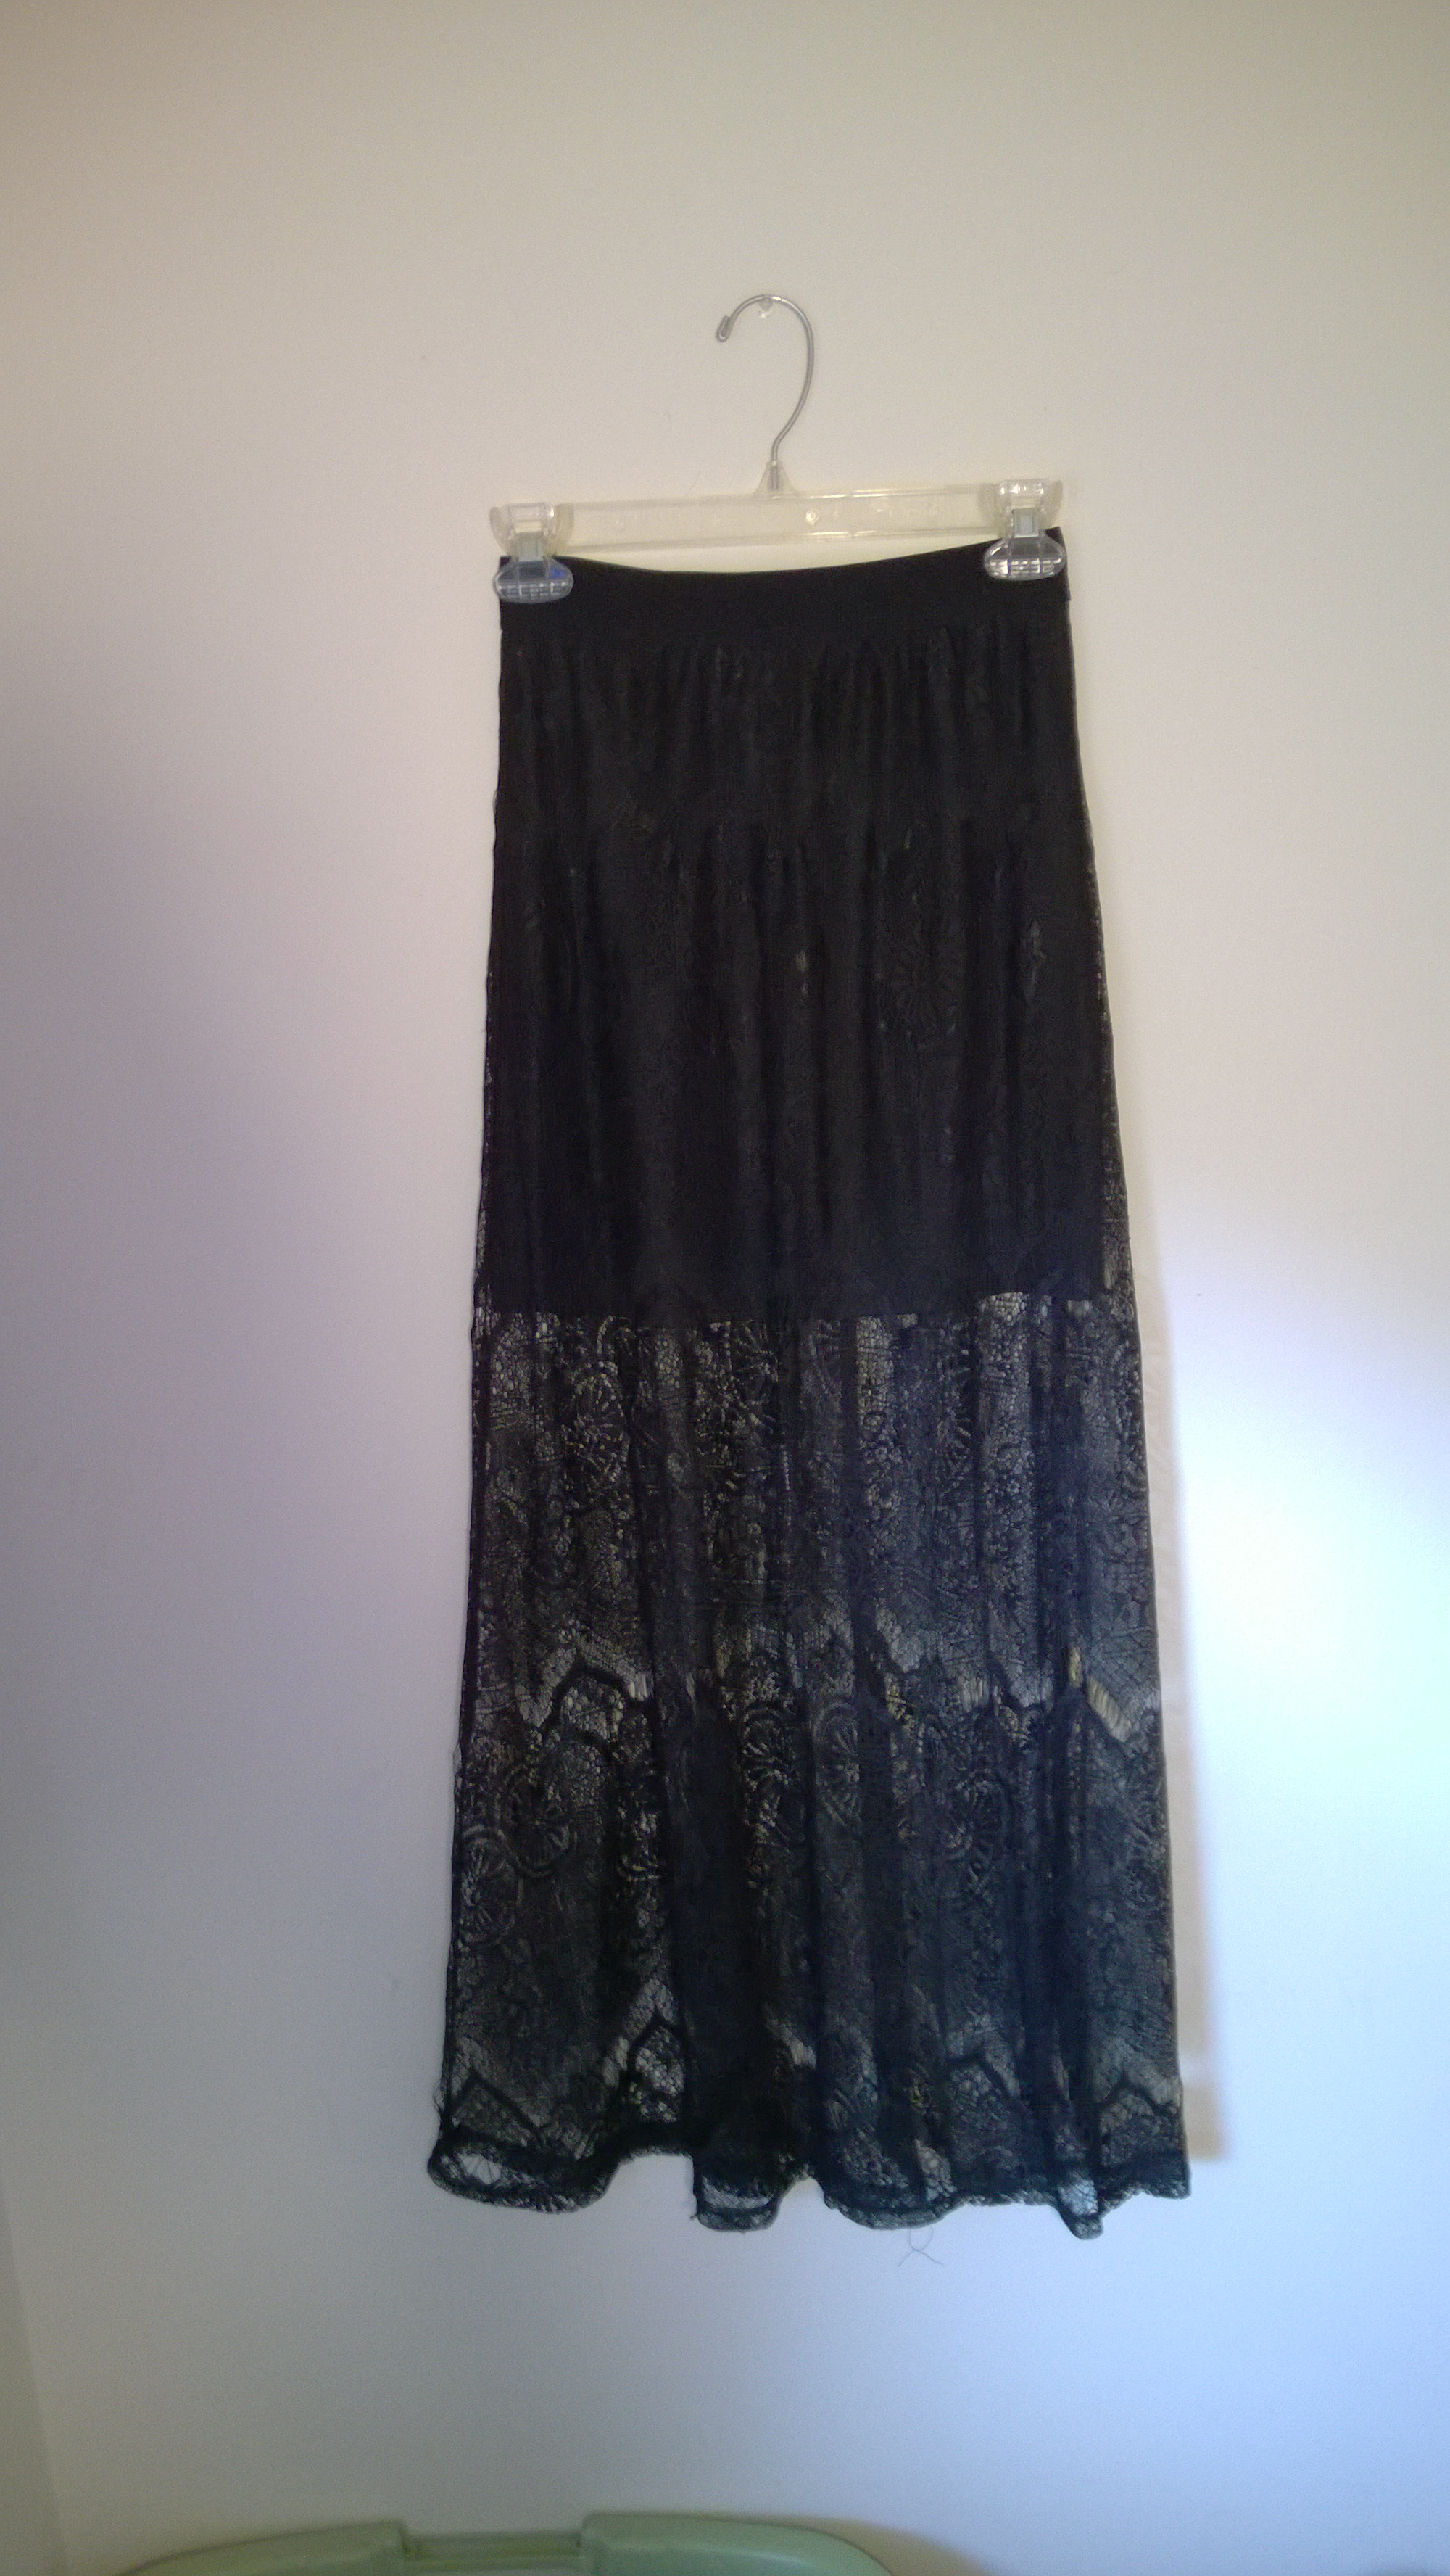 online sports shoes united kingdom Black sheer lace maxi skirt sold by Saylor Jayn